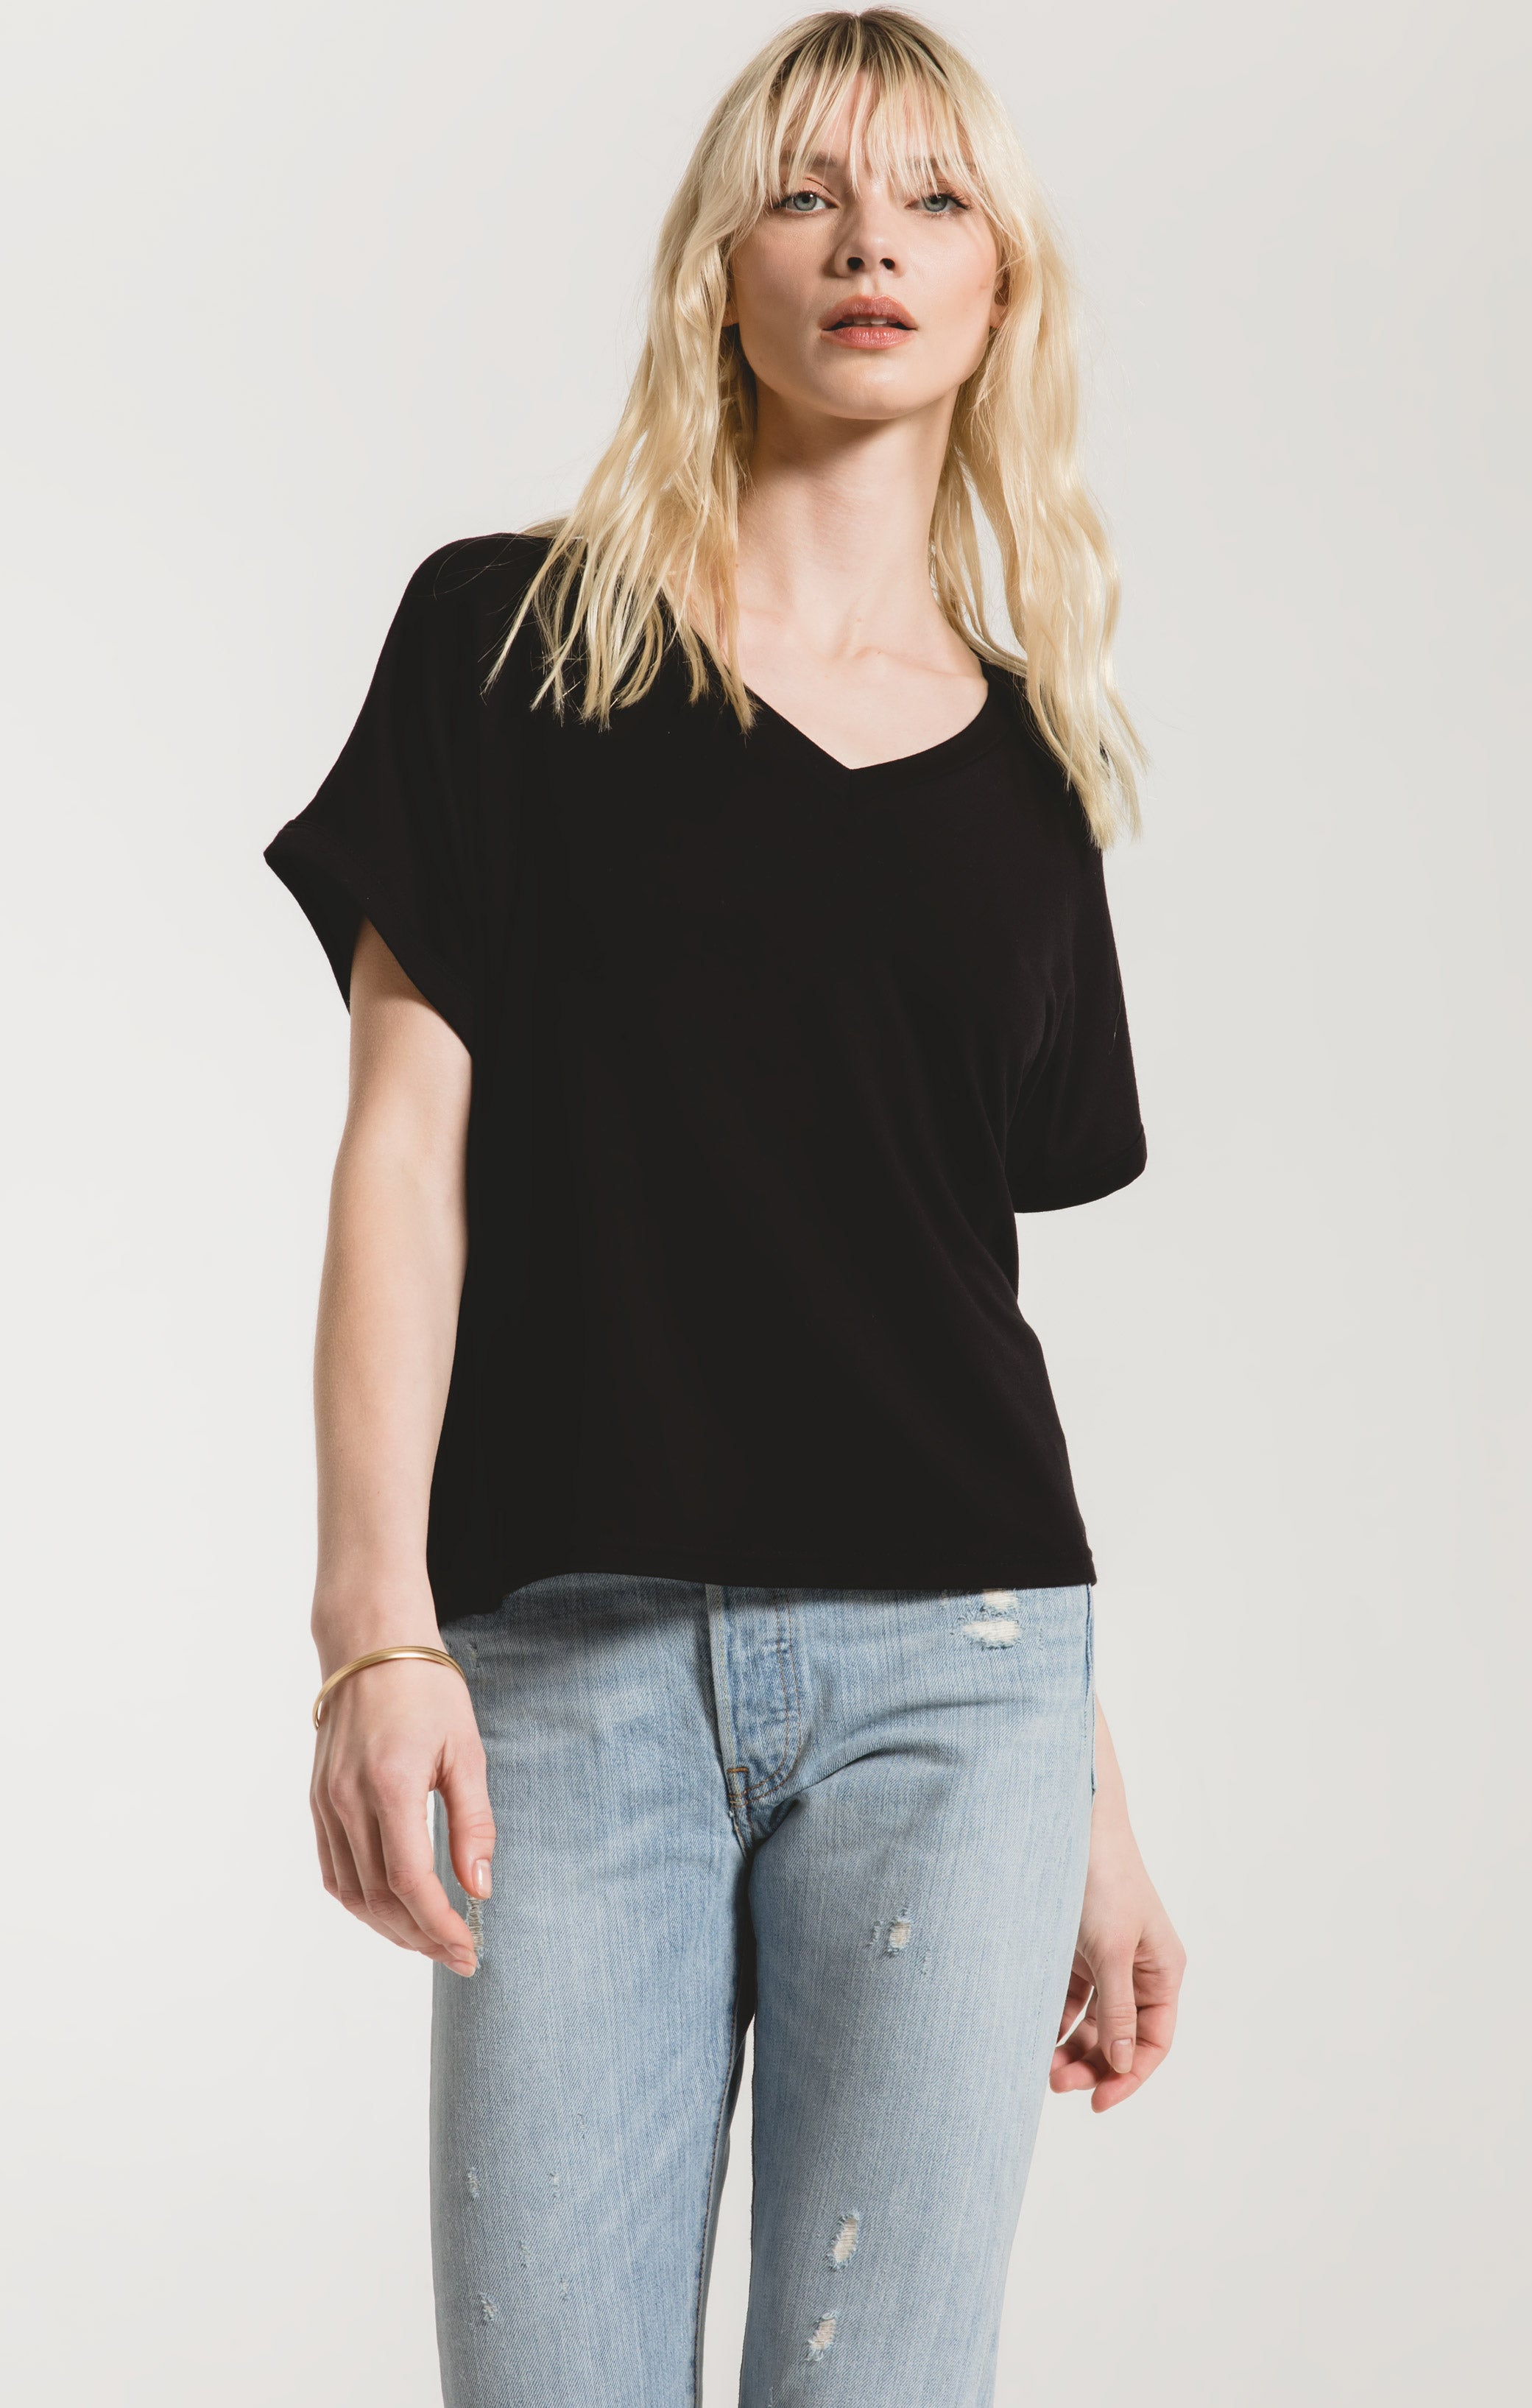 Tops The Alda Dolman Tee Black